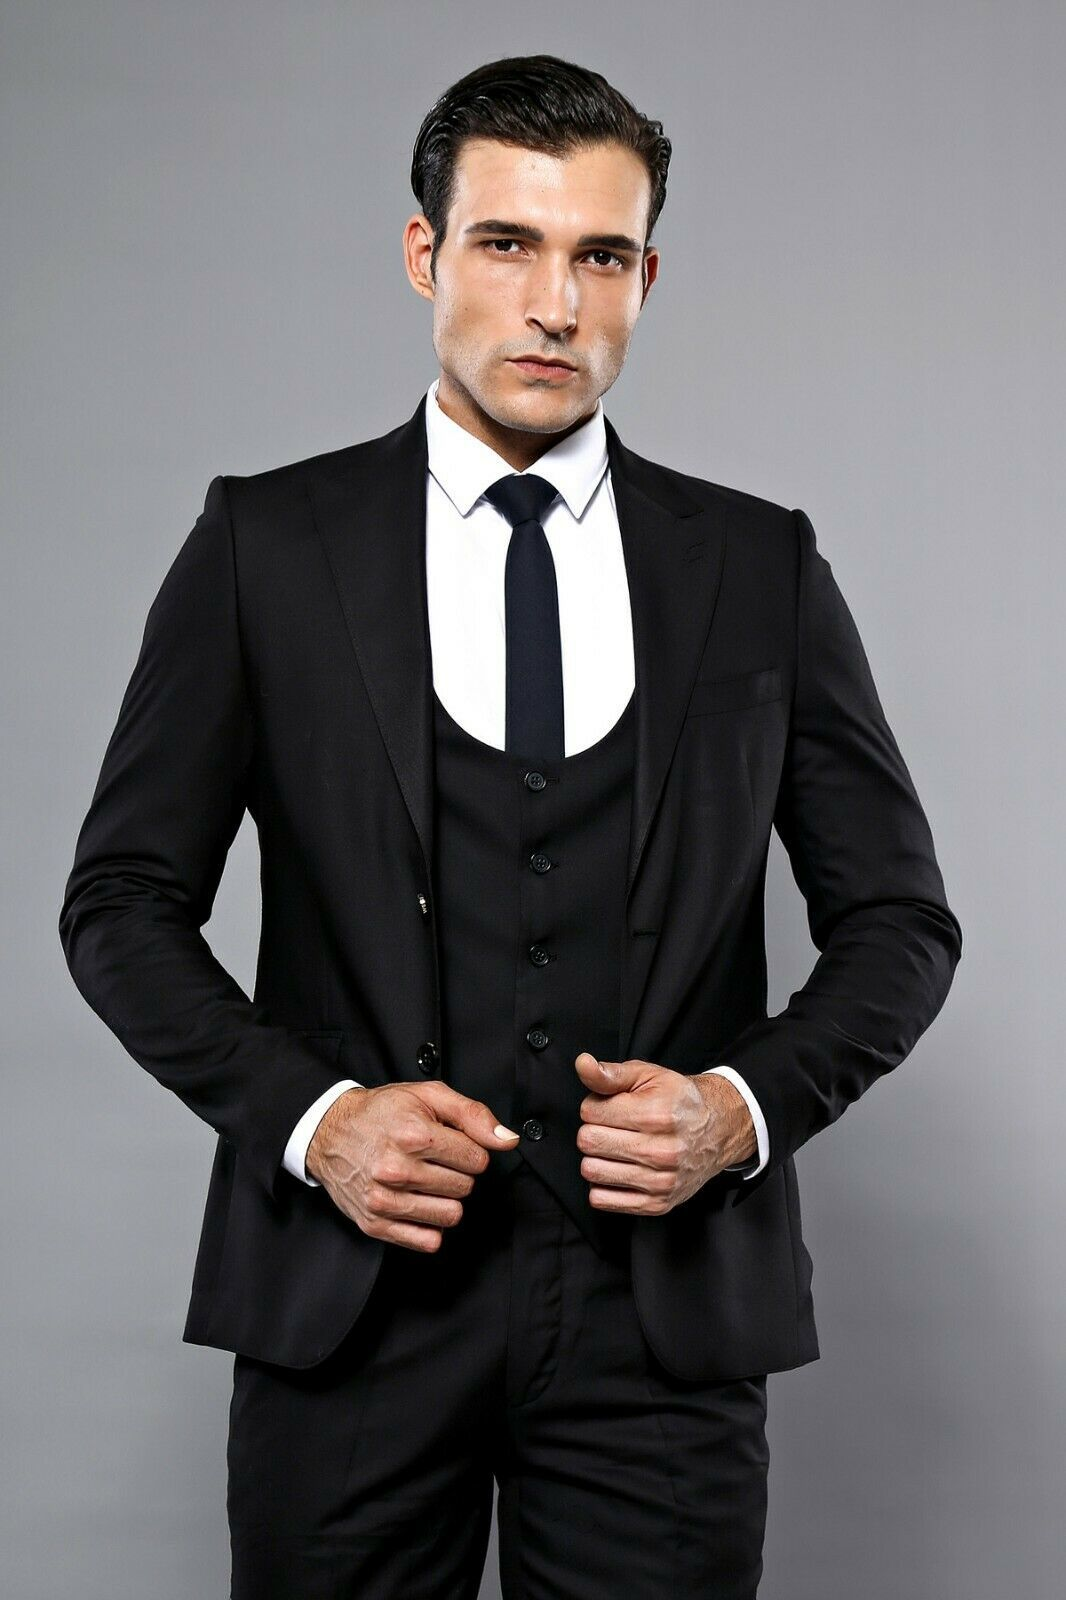 Primary image for Men Three Piece Vested Suit WESSI by J.VALINTIN Extra Slim Fit JV7 Black Sheen